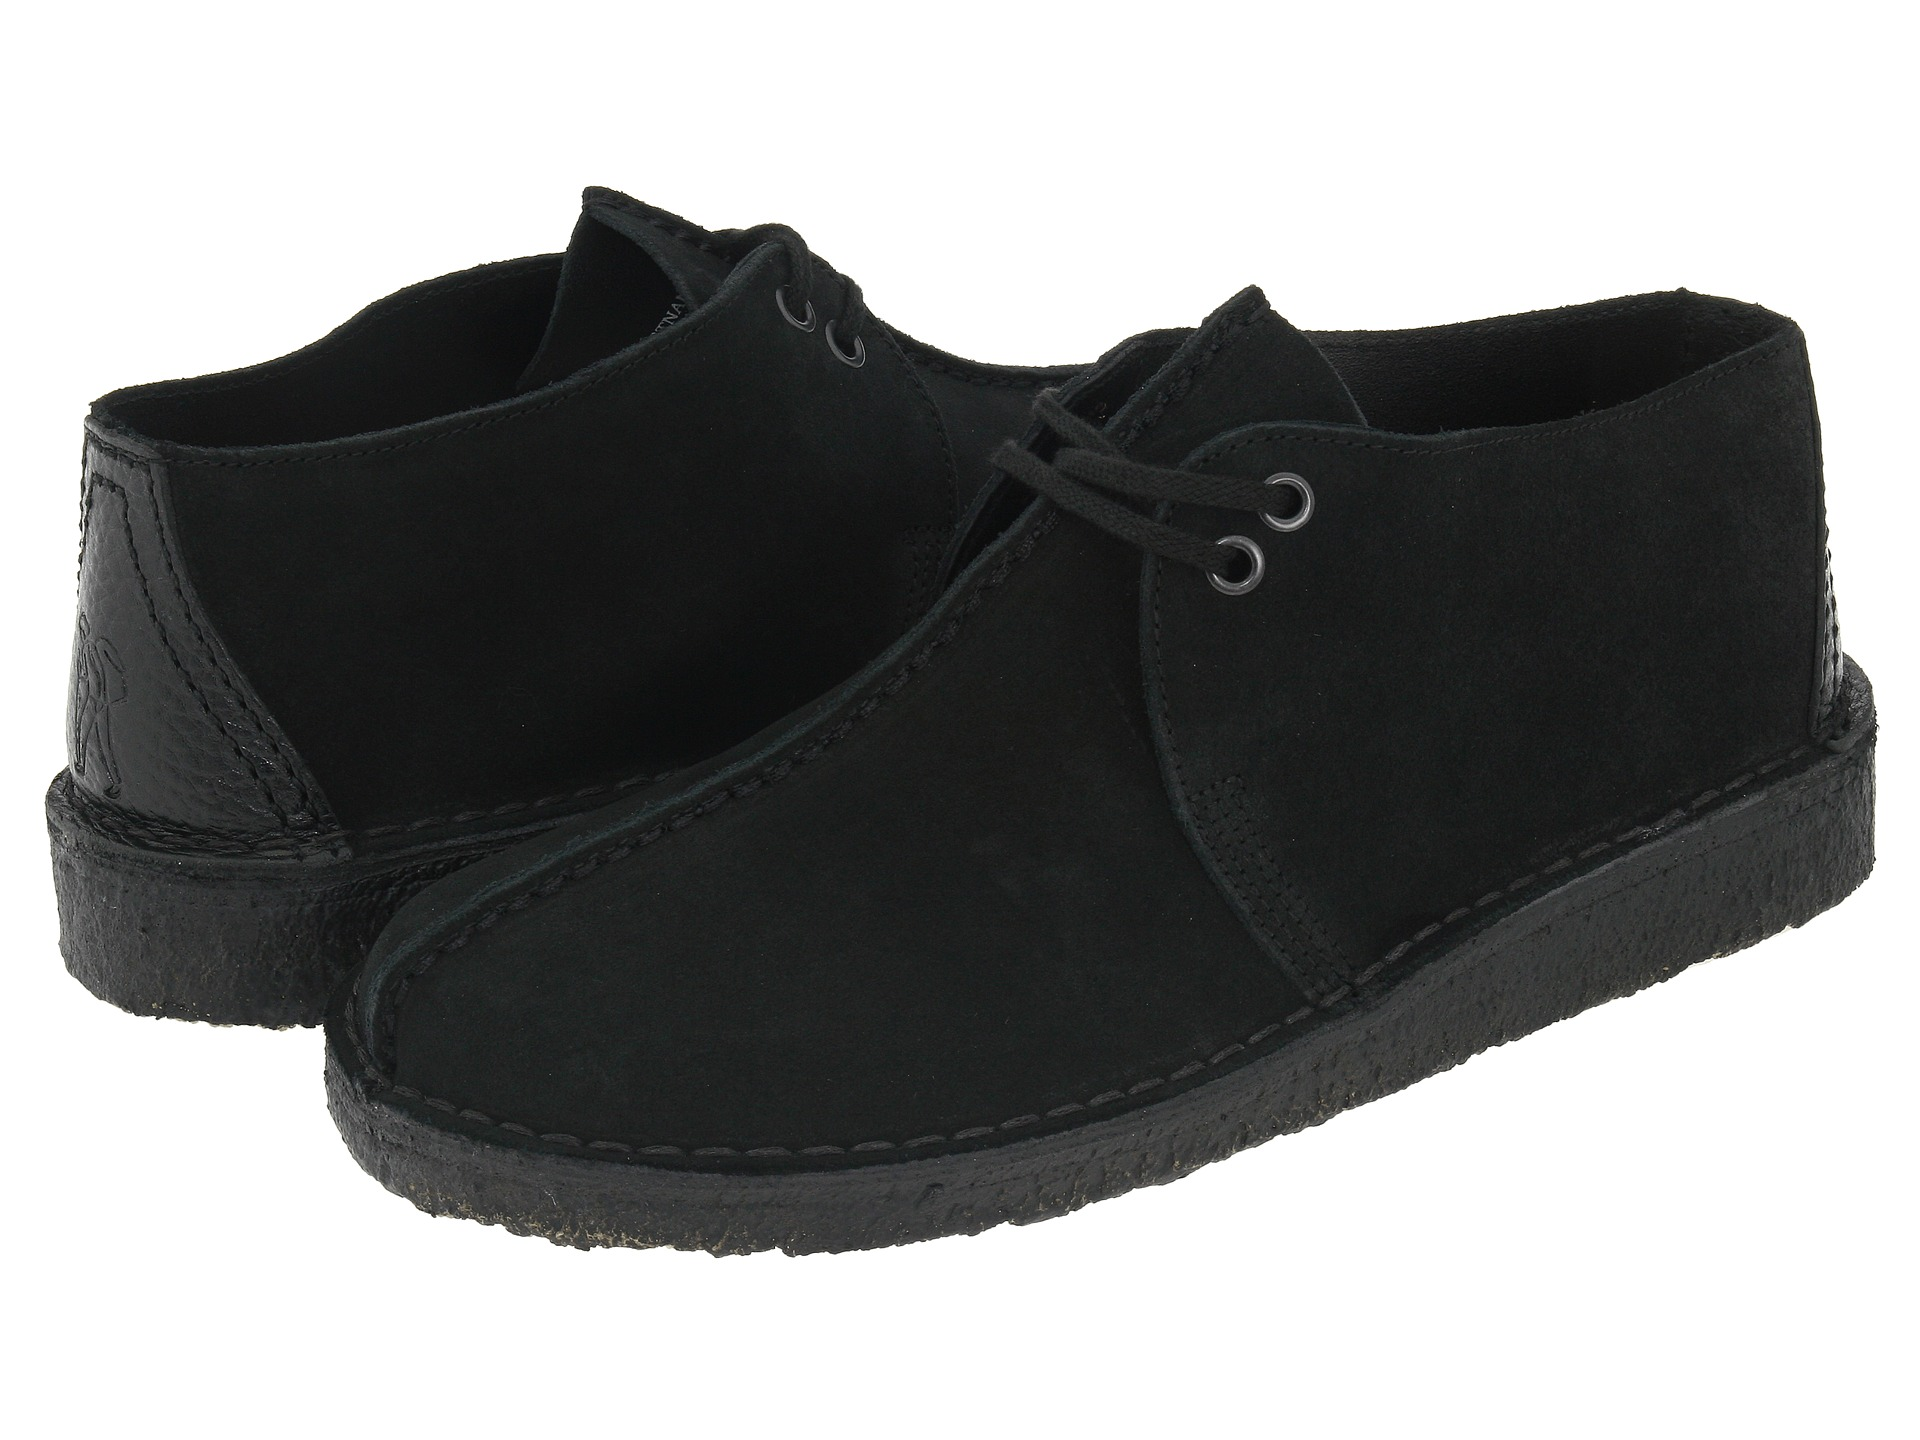 Clarks Men Shoe Size